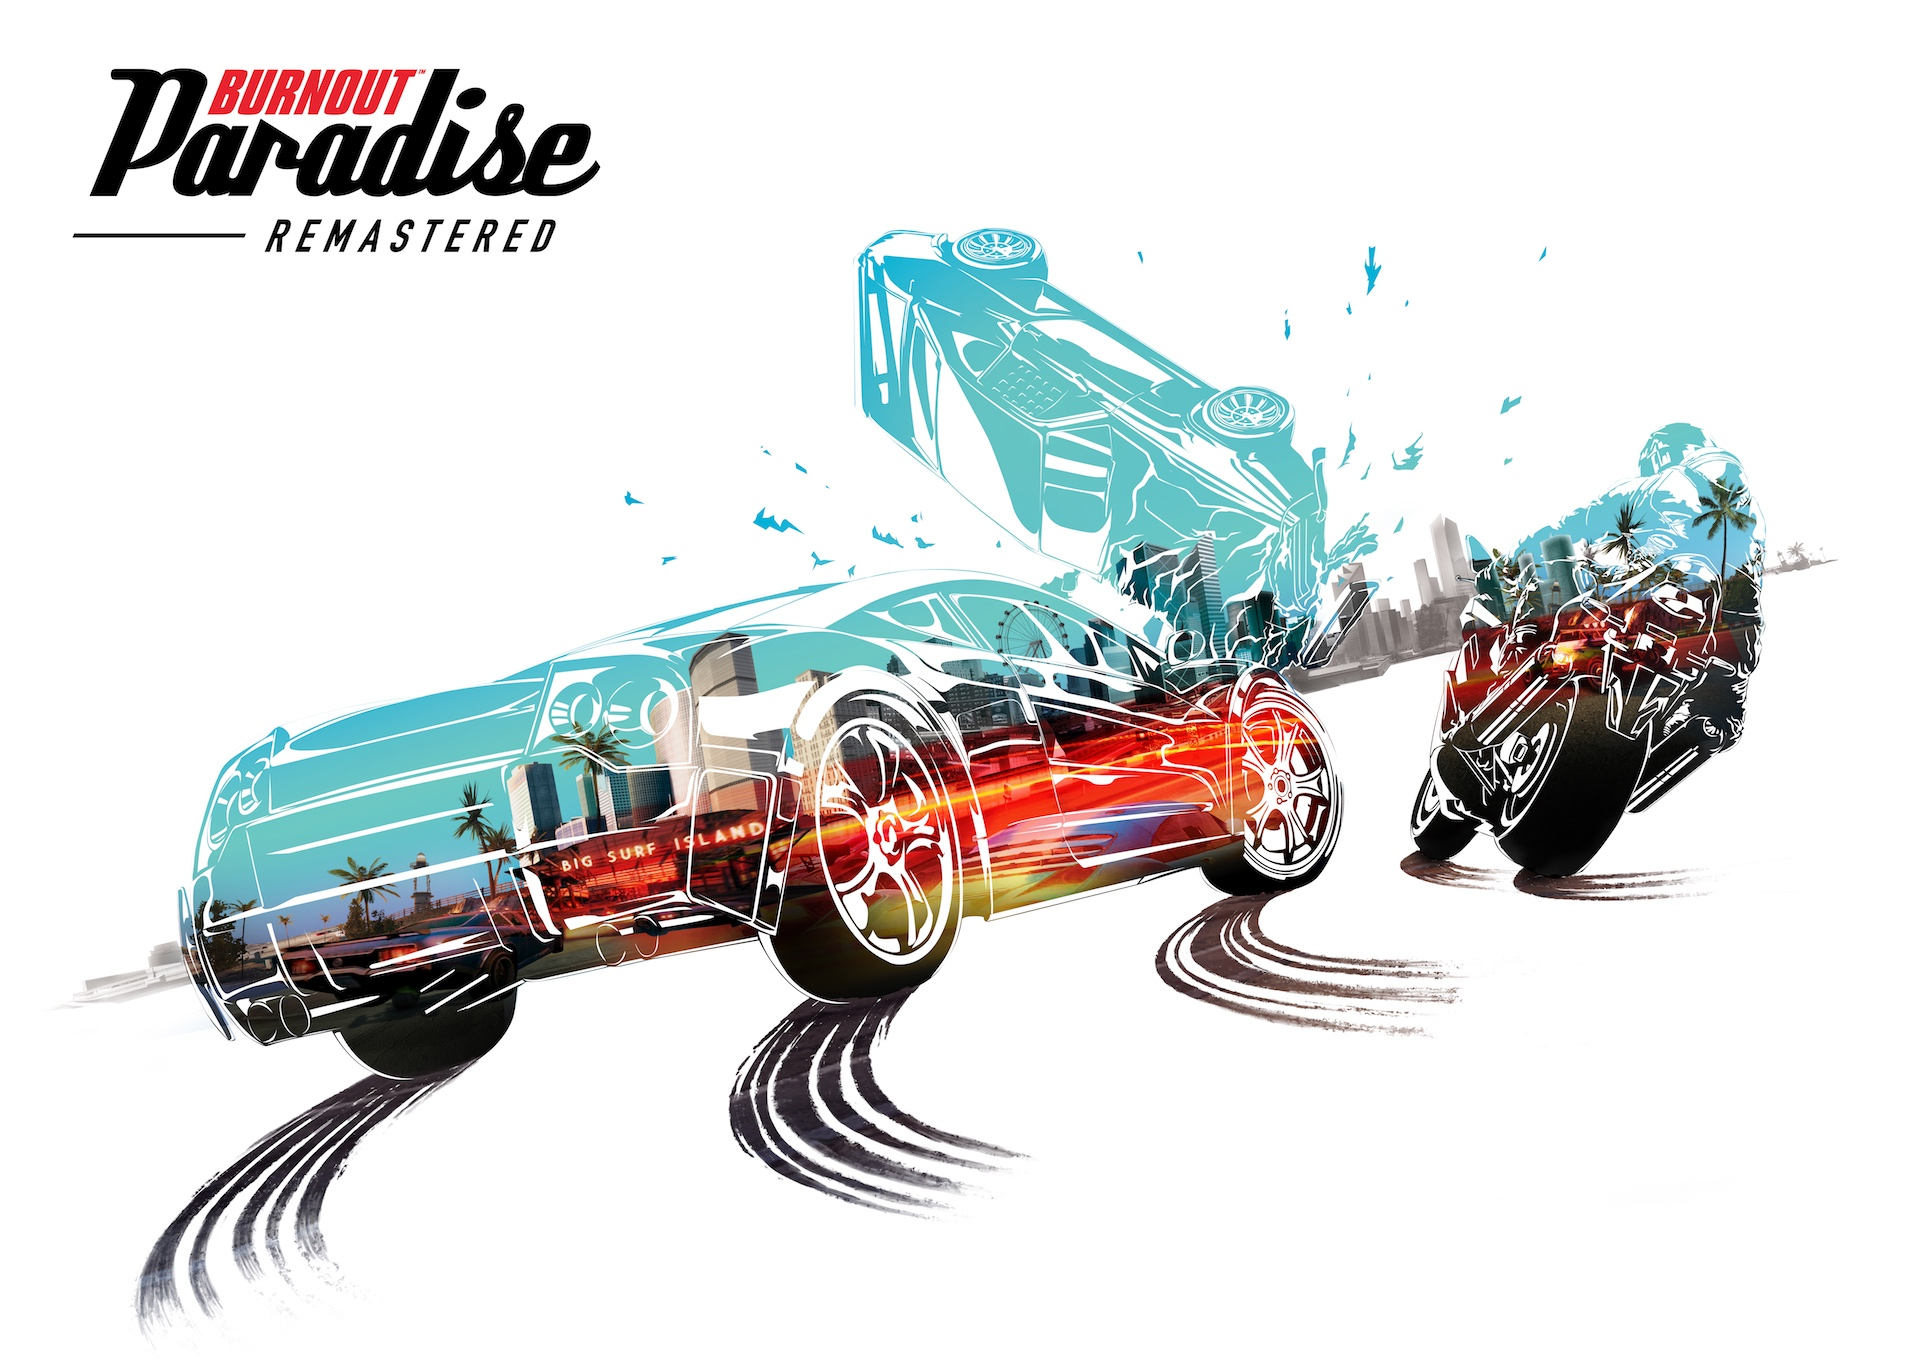 'Burnout Paradise' is back with a $40 4K remaster March 16th